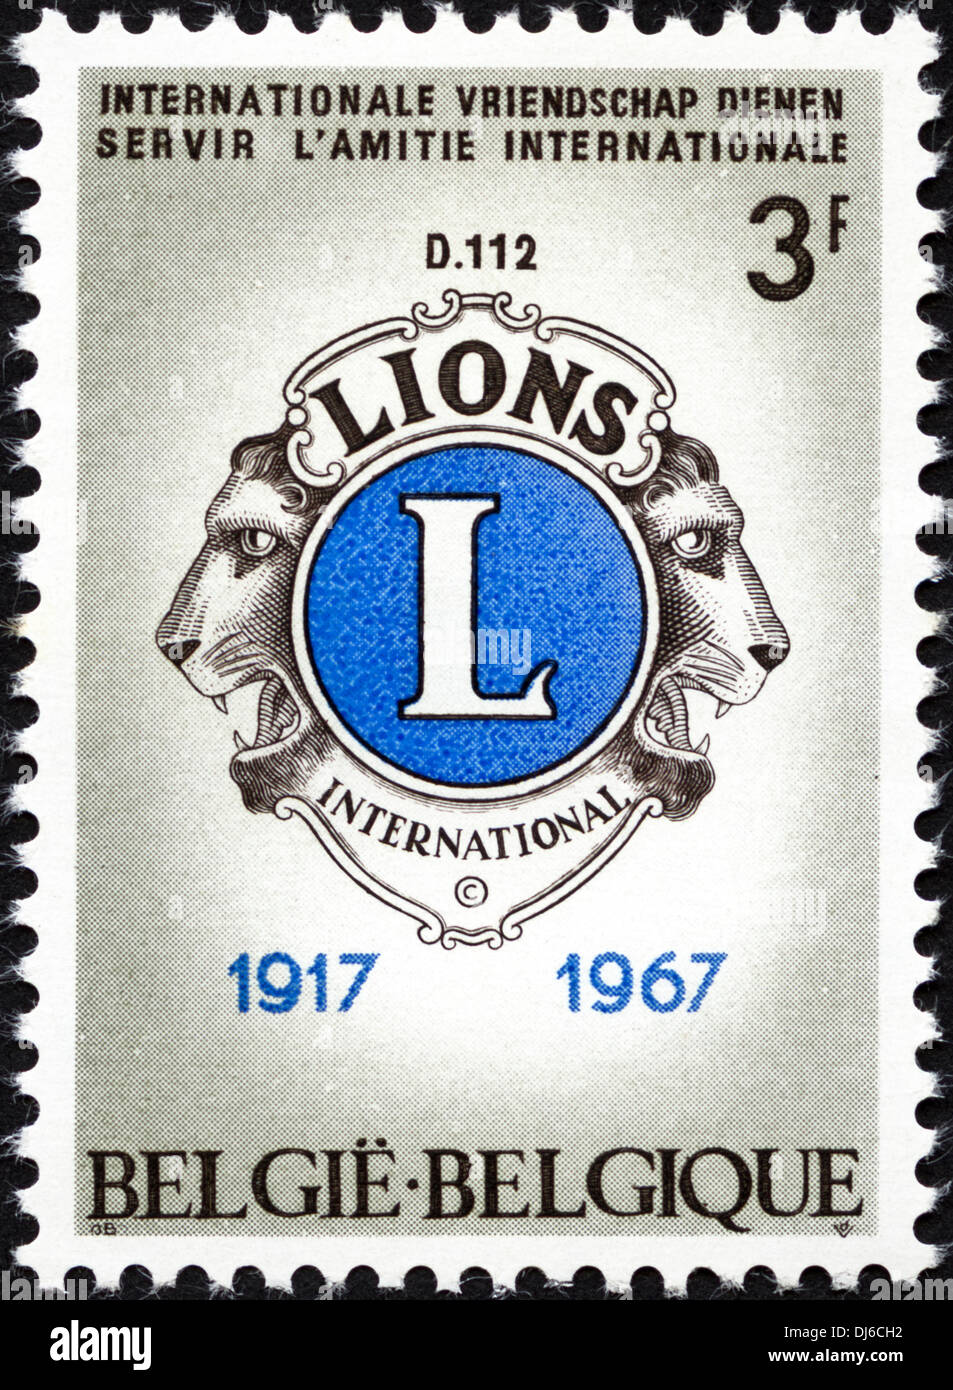 postage stamp Belgium 3F featuring Lions International 1917 - 1967 issued 1967 - Stock Image